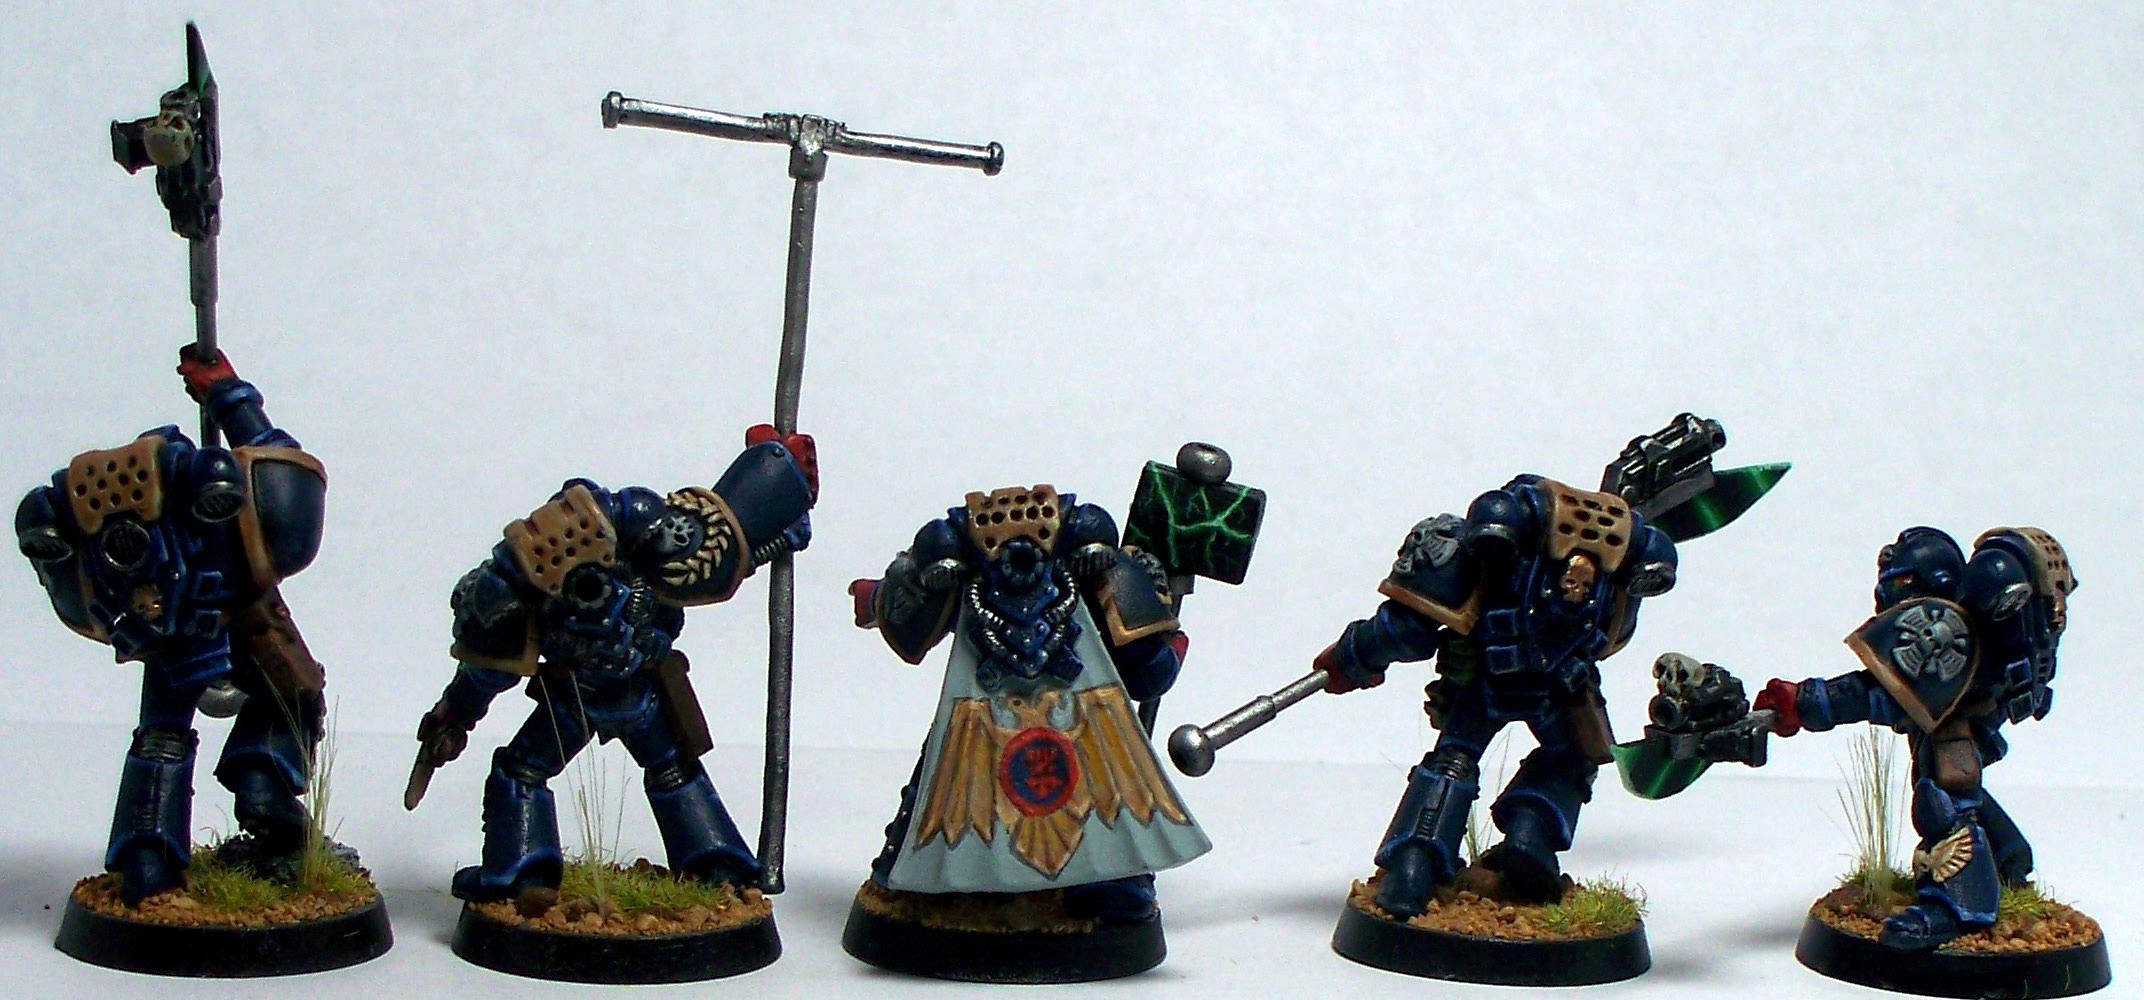 Chapter Champion, Crimson Fists, Freehand, Honor Guard, Imperium, Space Marines, Standard Bearer, Warhammer 40,000